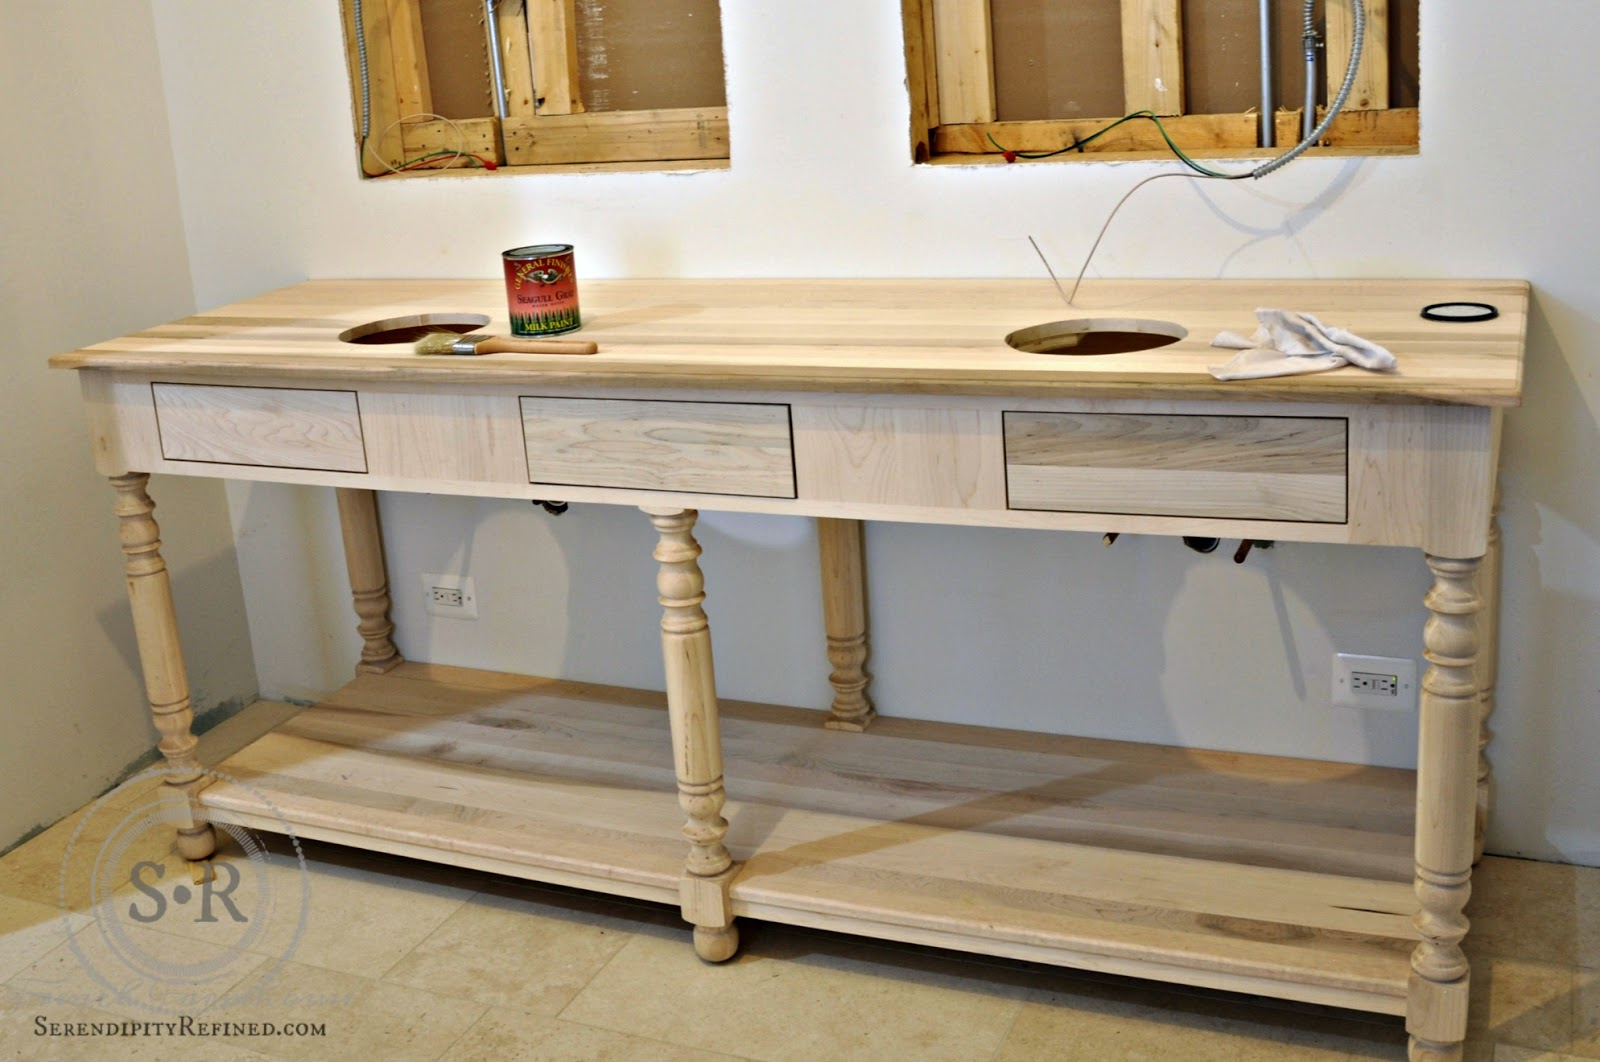 Serendipity refined blog diy painted reproduction french drapers i fell in love with the idea of repurposing a table as a master bathroom vanity when i saw the gorgeous table that brooke giannetti used in her bathroom at geotapseo Image collections